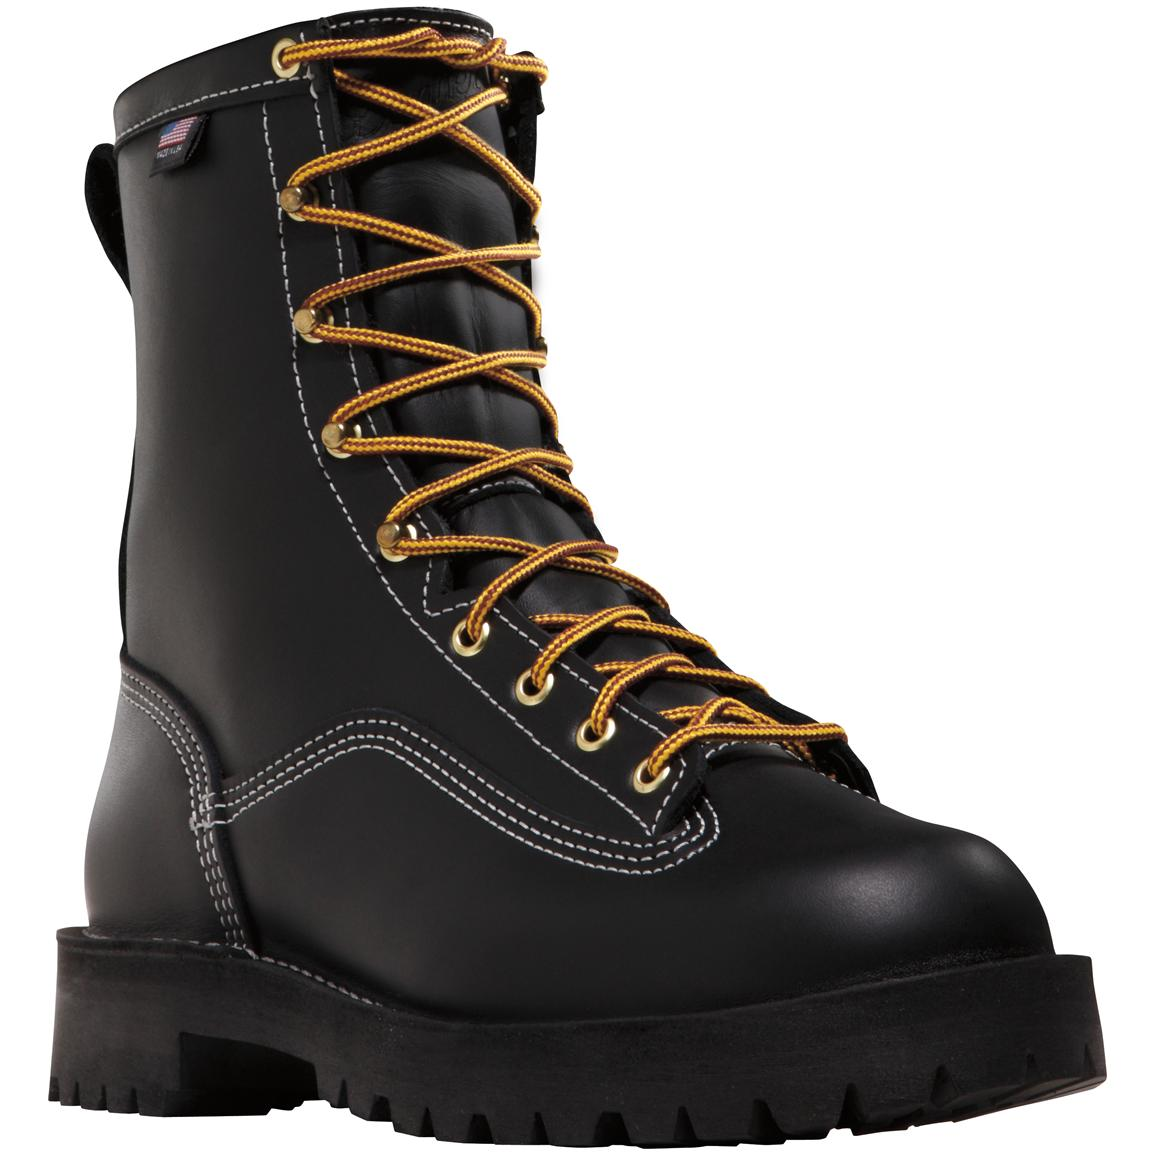 Men's 8 inch Danner® Super Rain Forest™ Plain Toe Work Boots